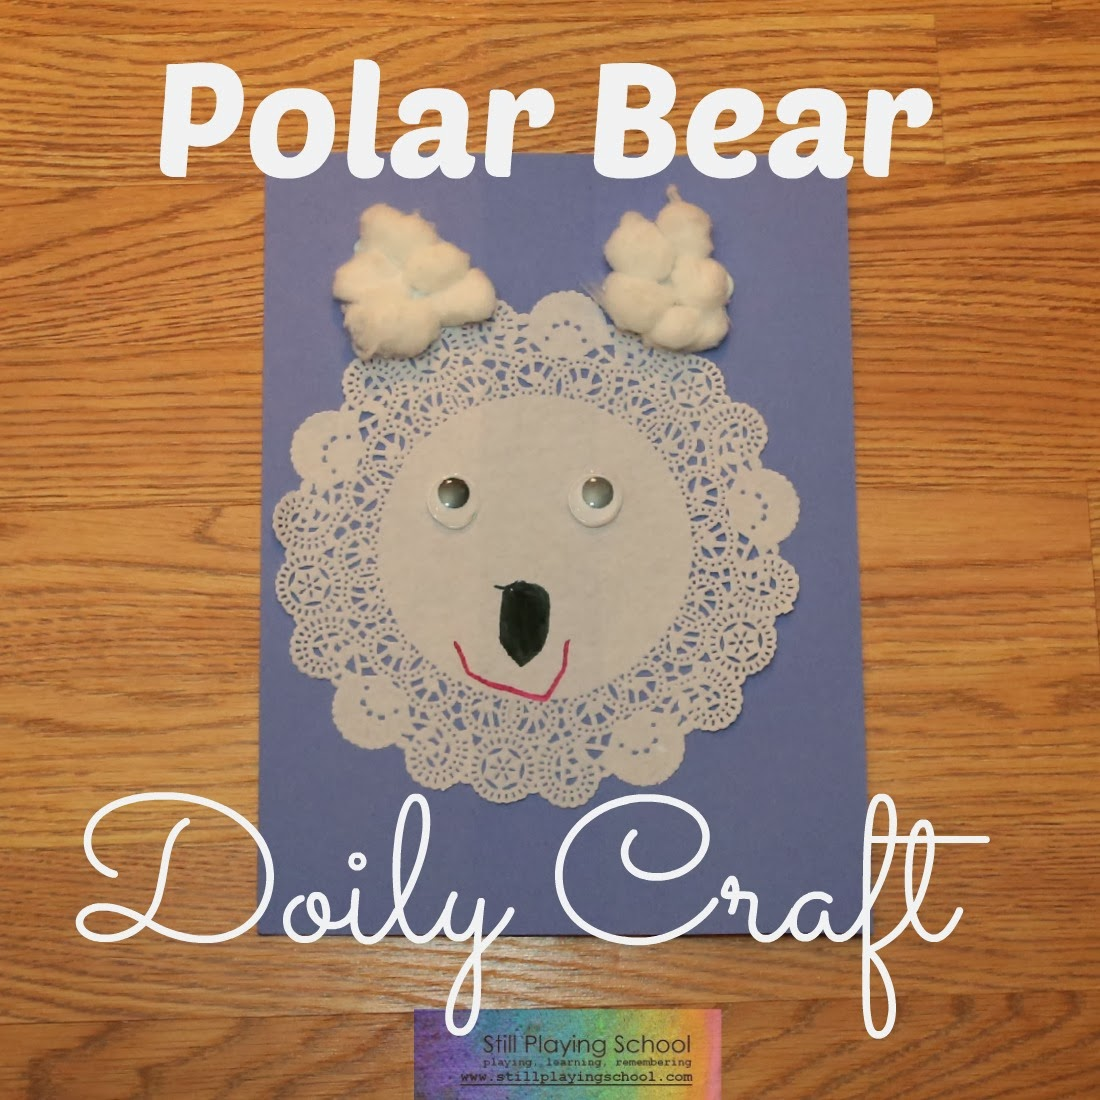 Polar Bear Doily Craft